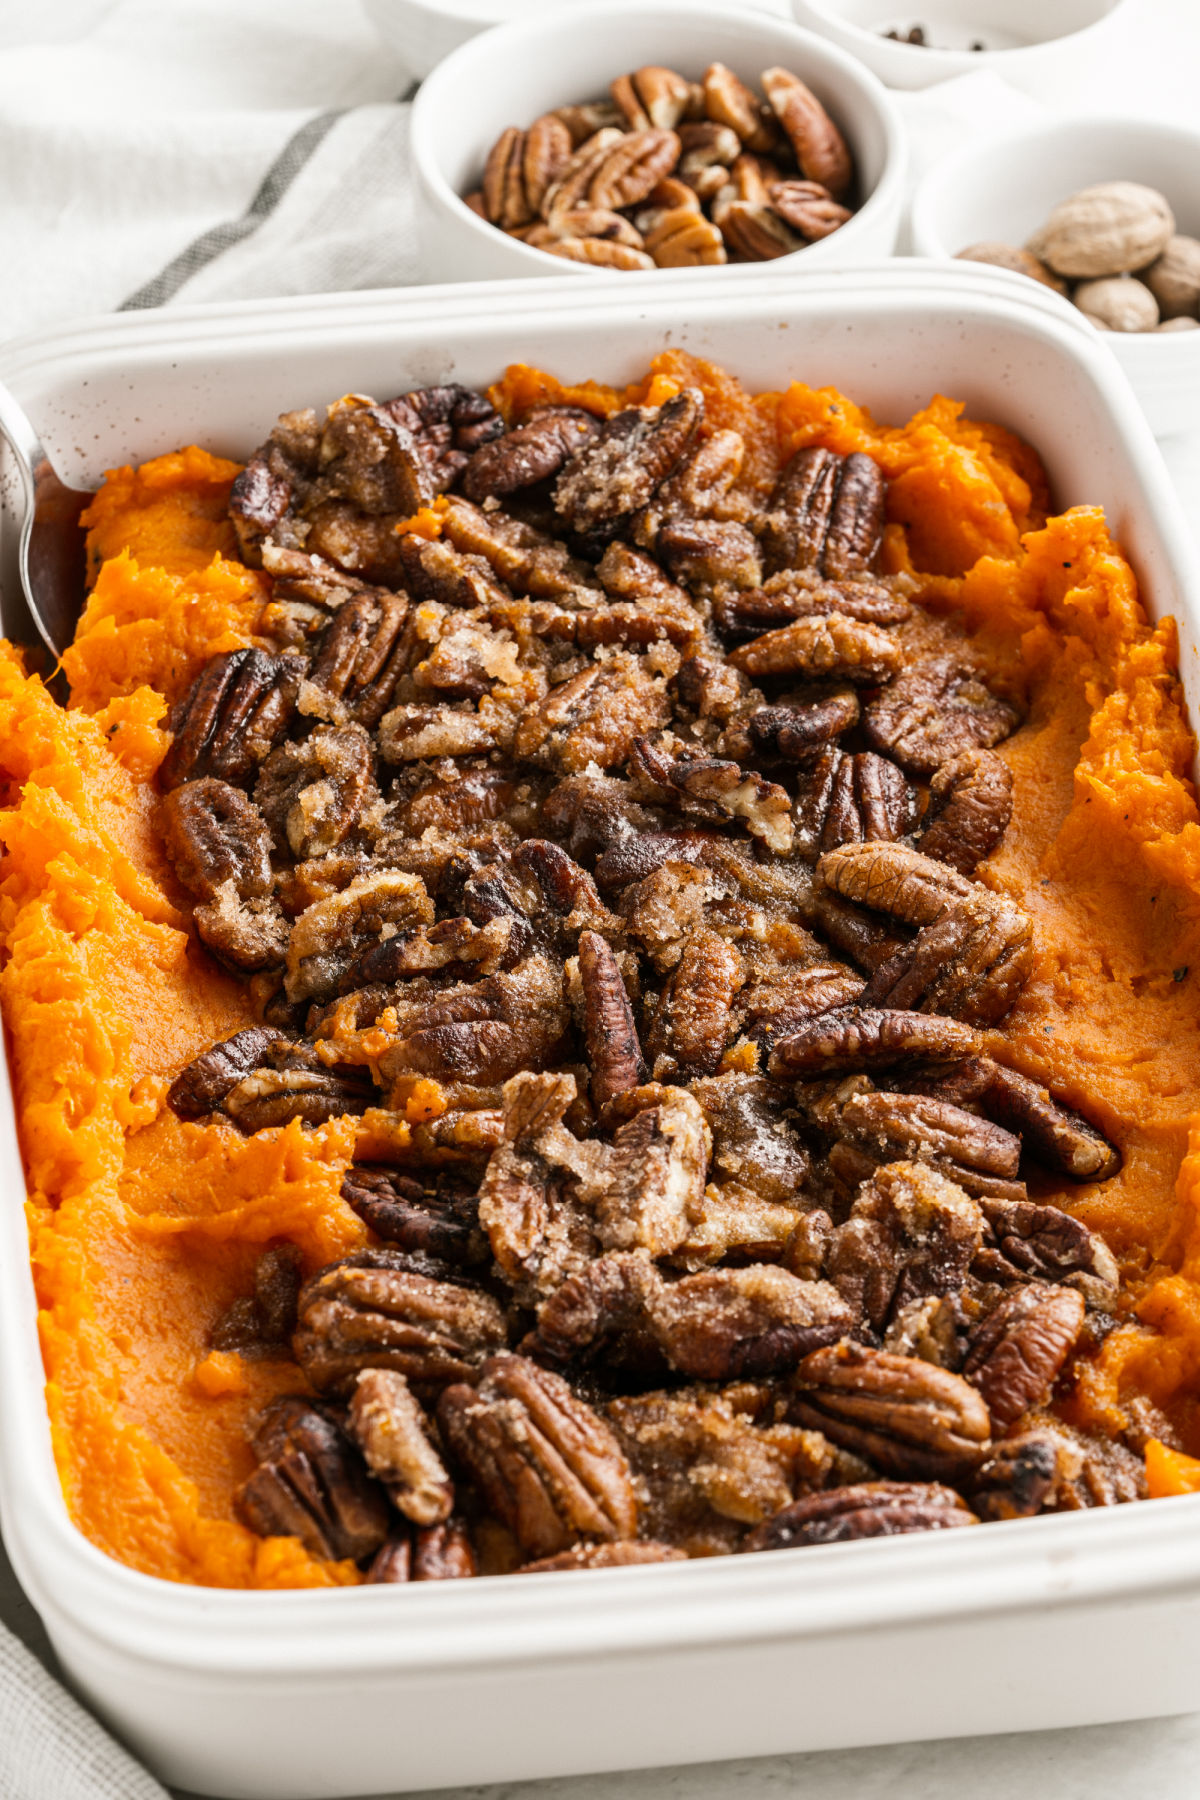 Sweet potato casserole topped with sugar free pecan topping.